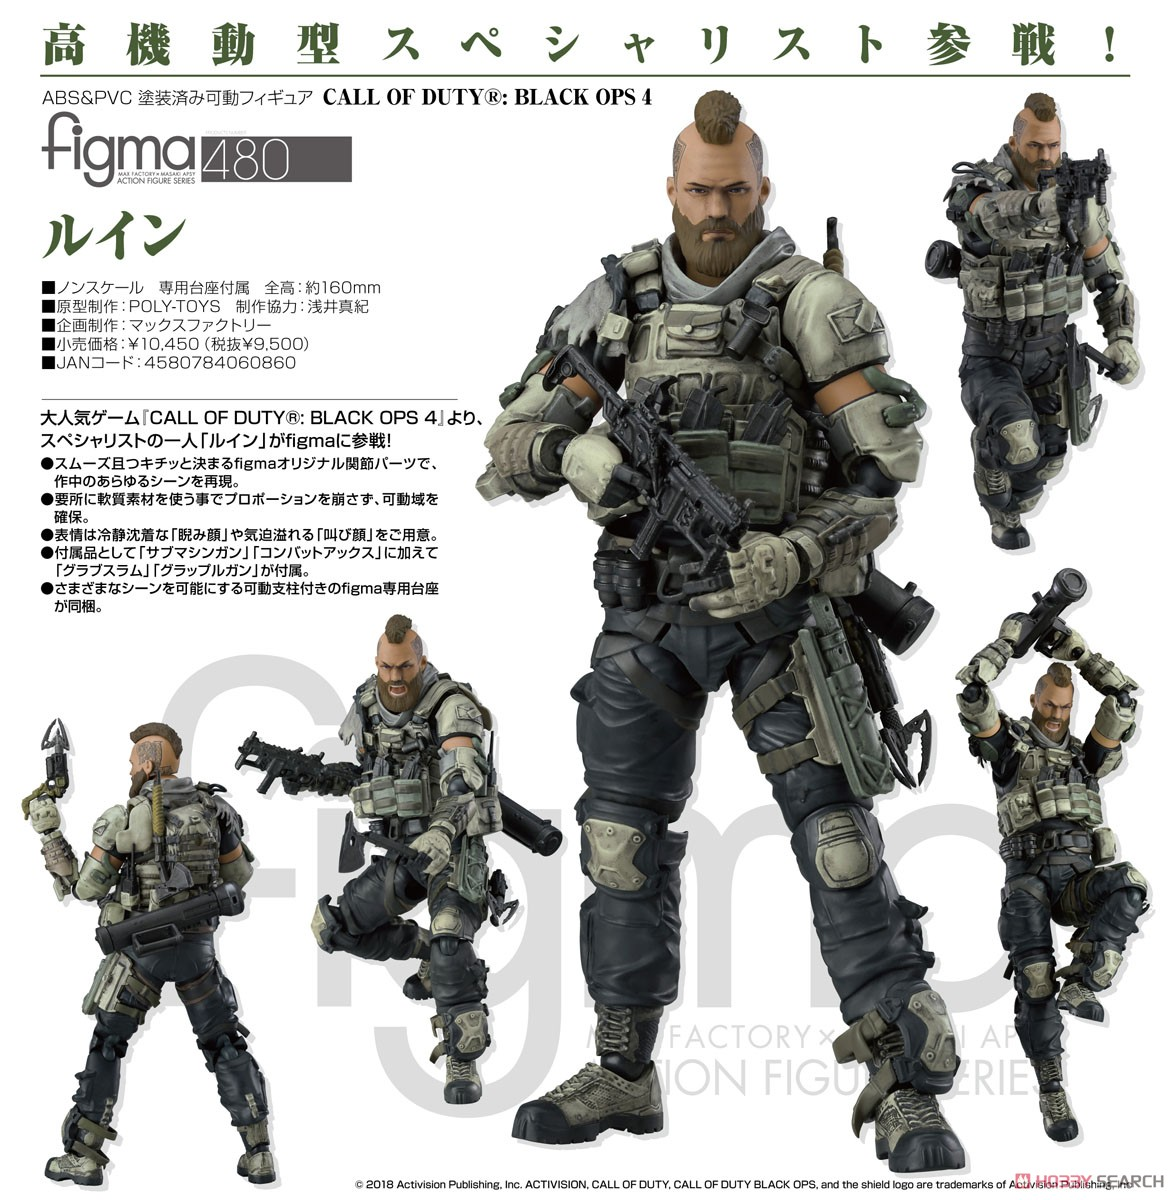 figma『ルイン(Ruin)』CALL OF DUTY: BLACK OPS 4 可動フィギュア-006